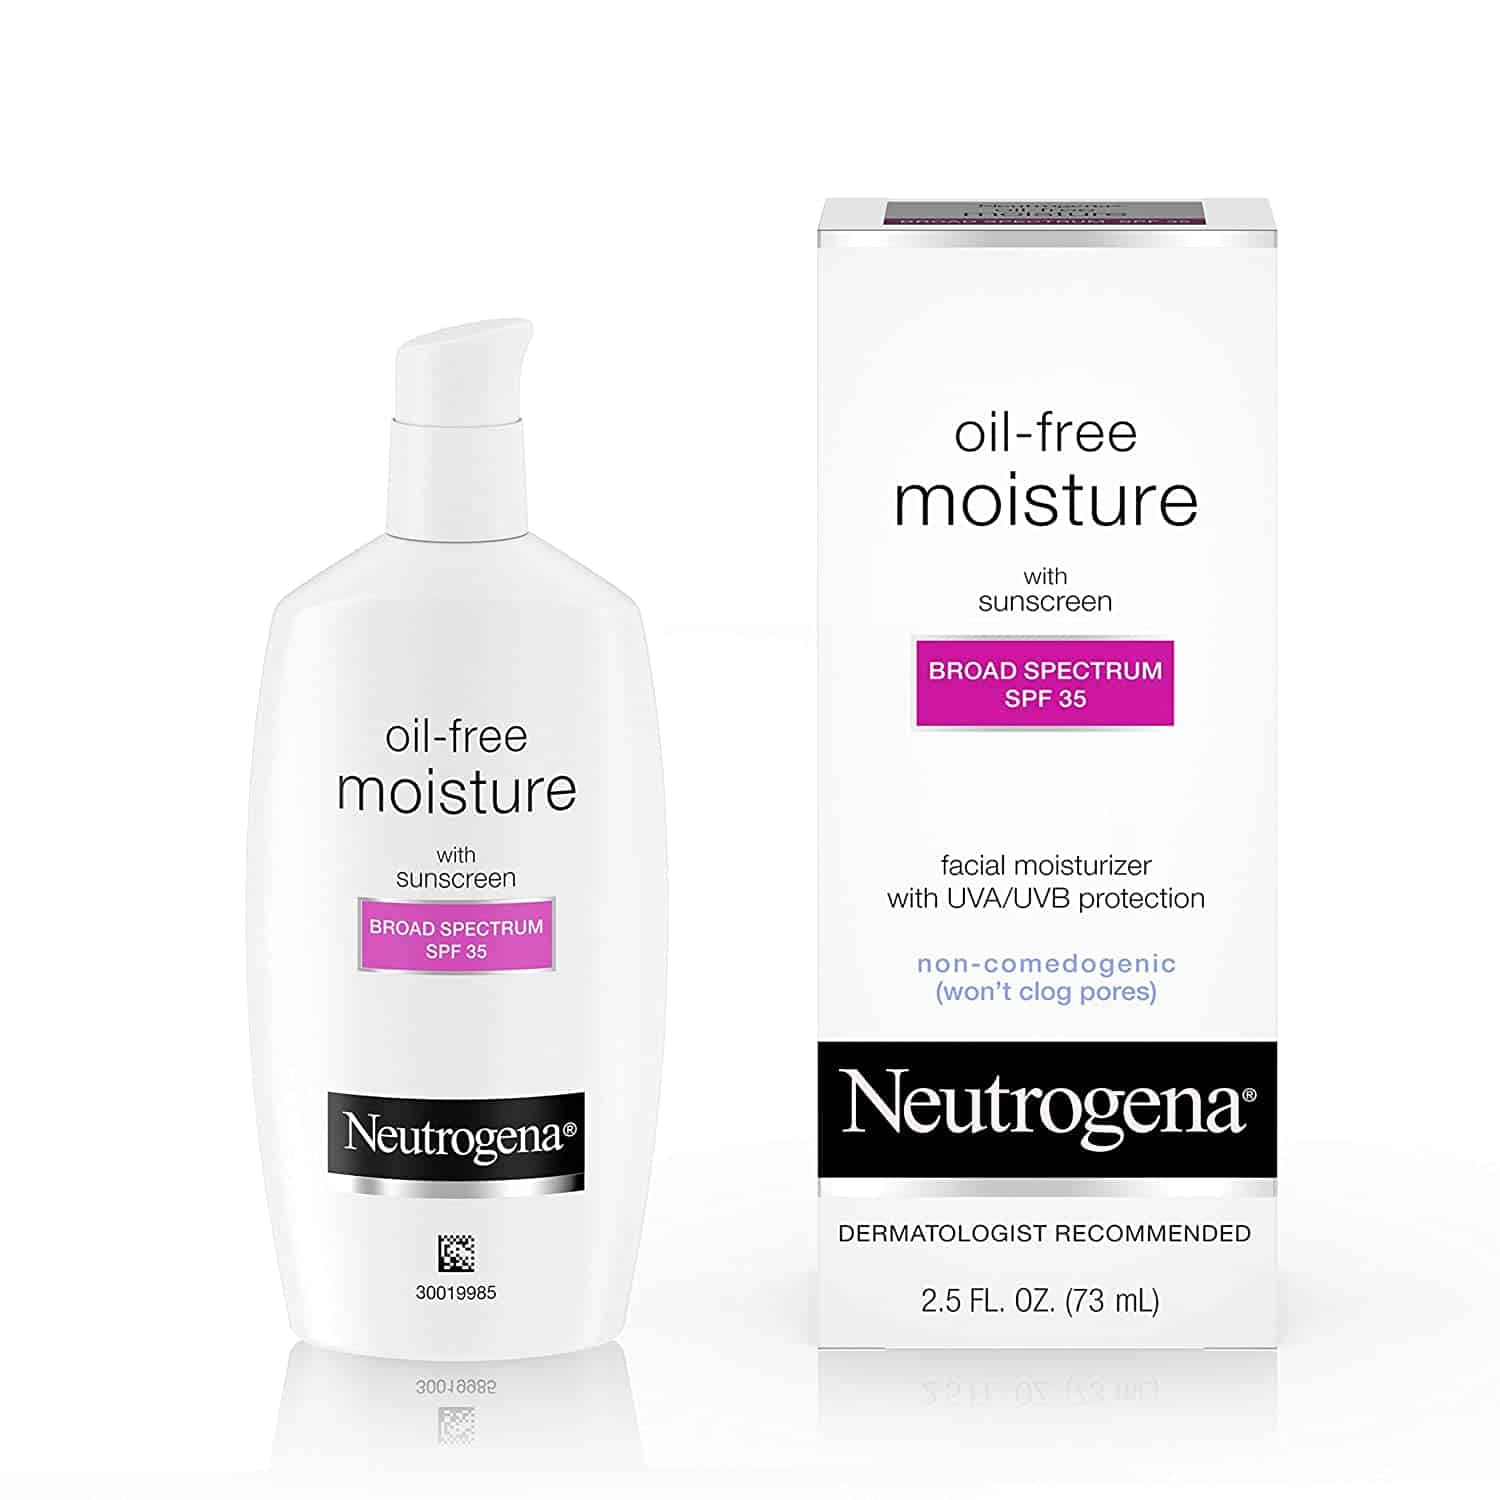 The Best Face Moisturizer With SPF Reviews – 2021 Top Picks